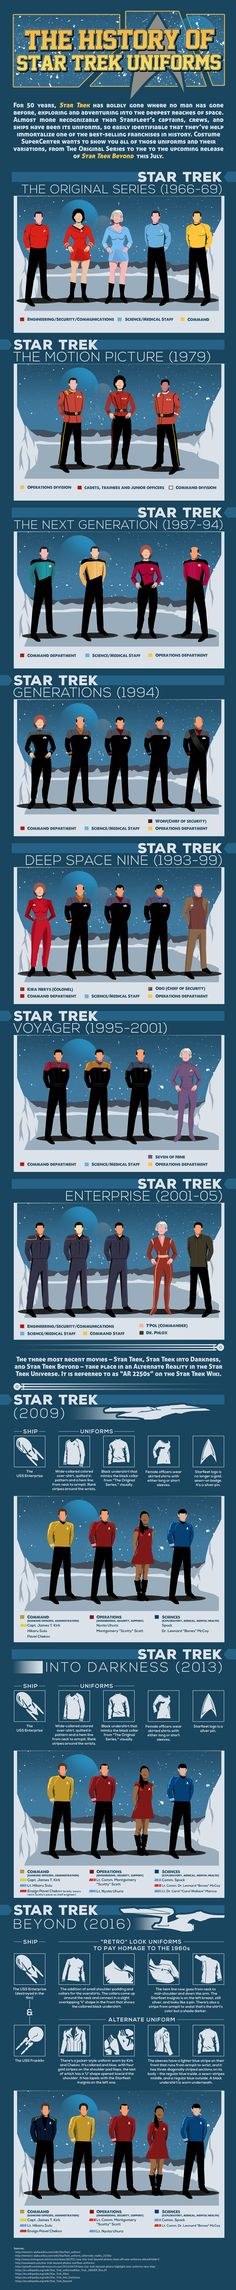 See how much Star Trek's Starfleet's style has changed throughout the years with the help of this infographic!